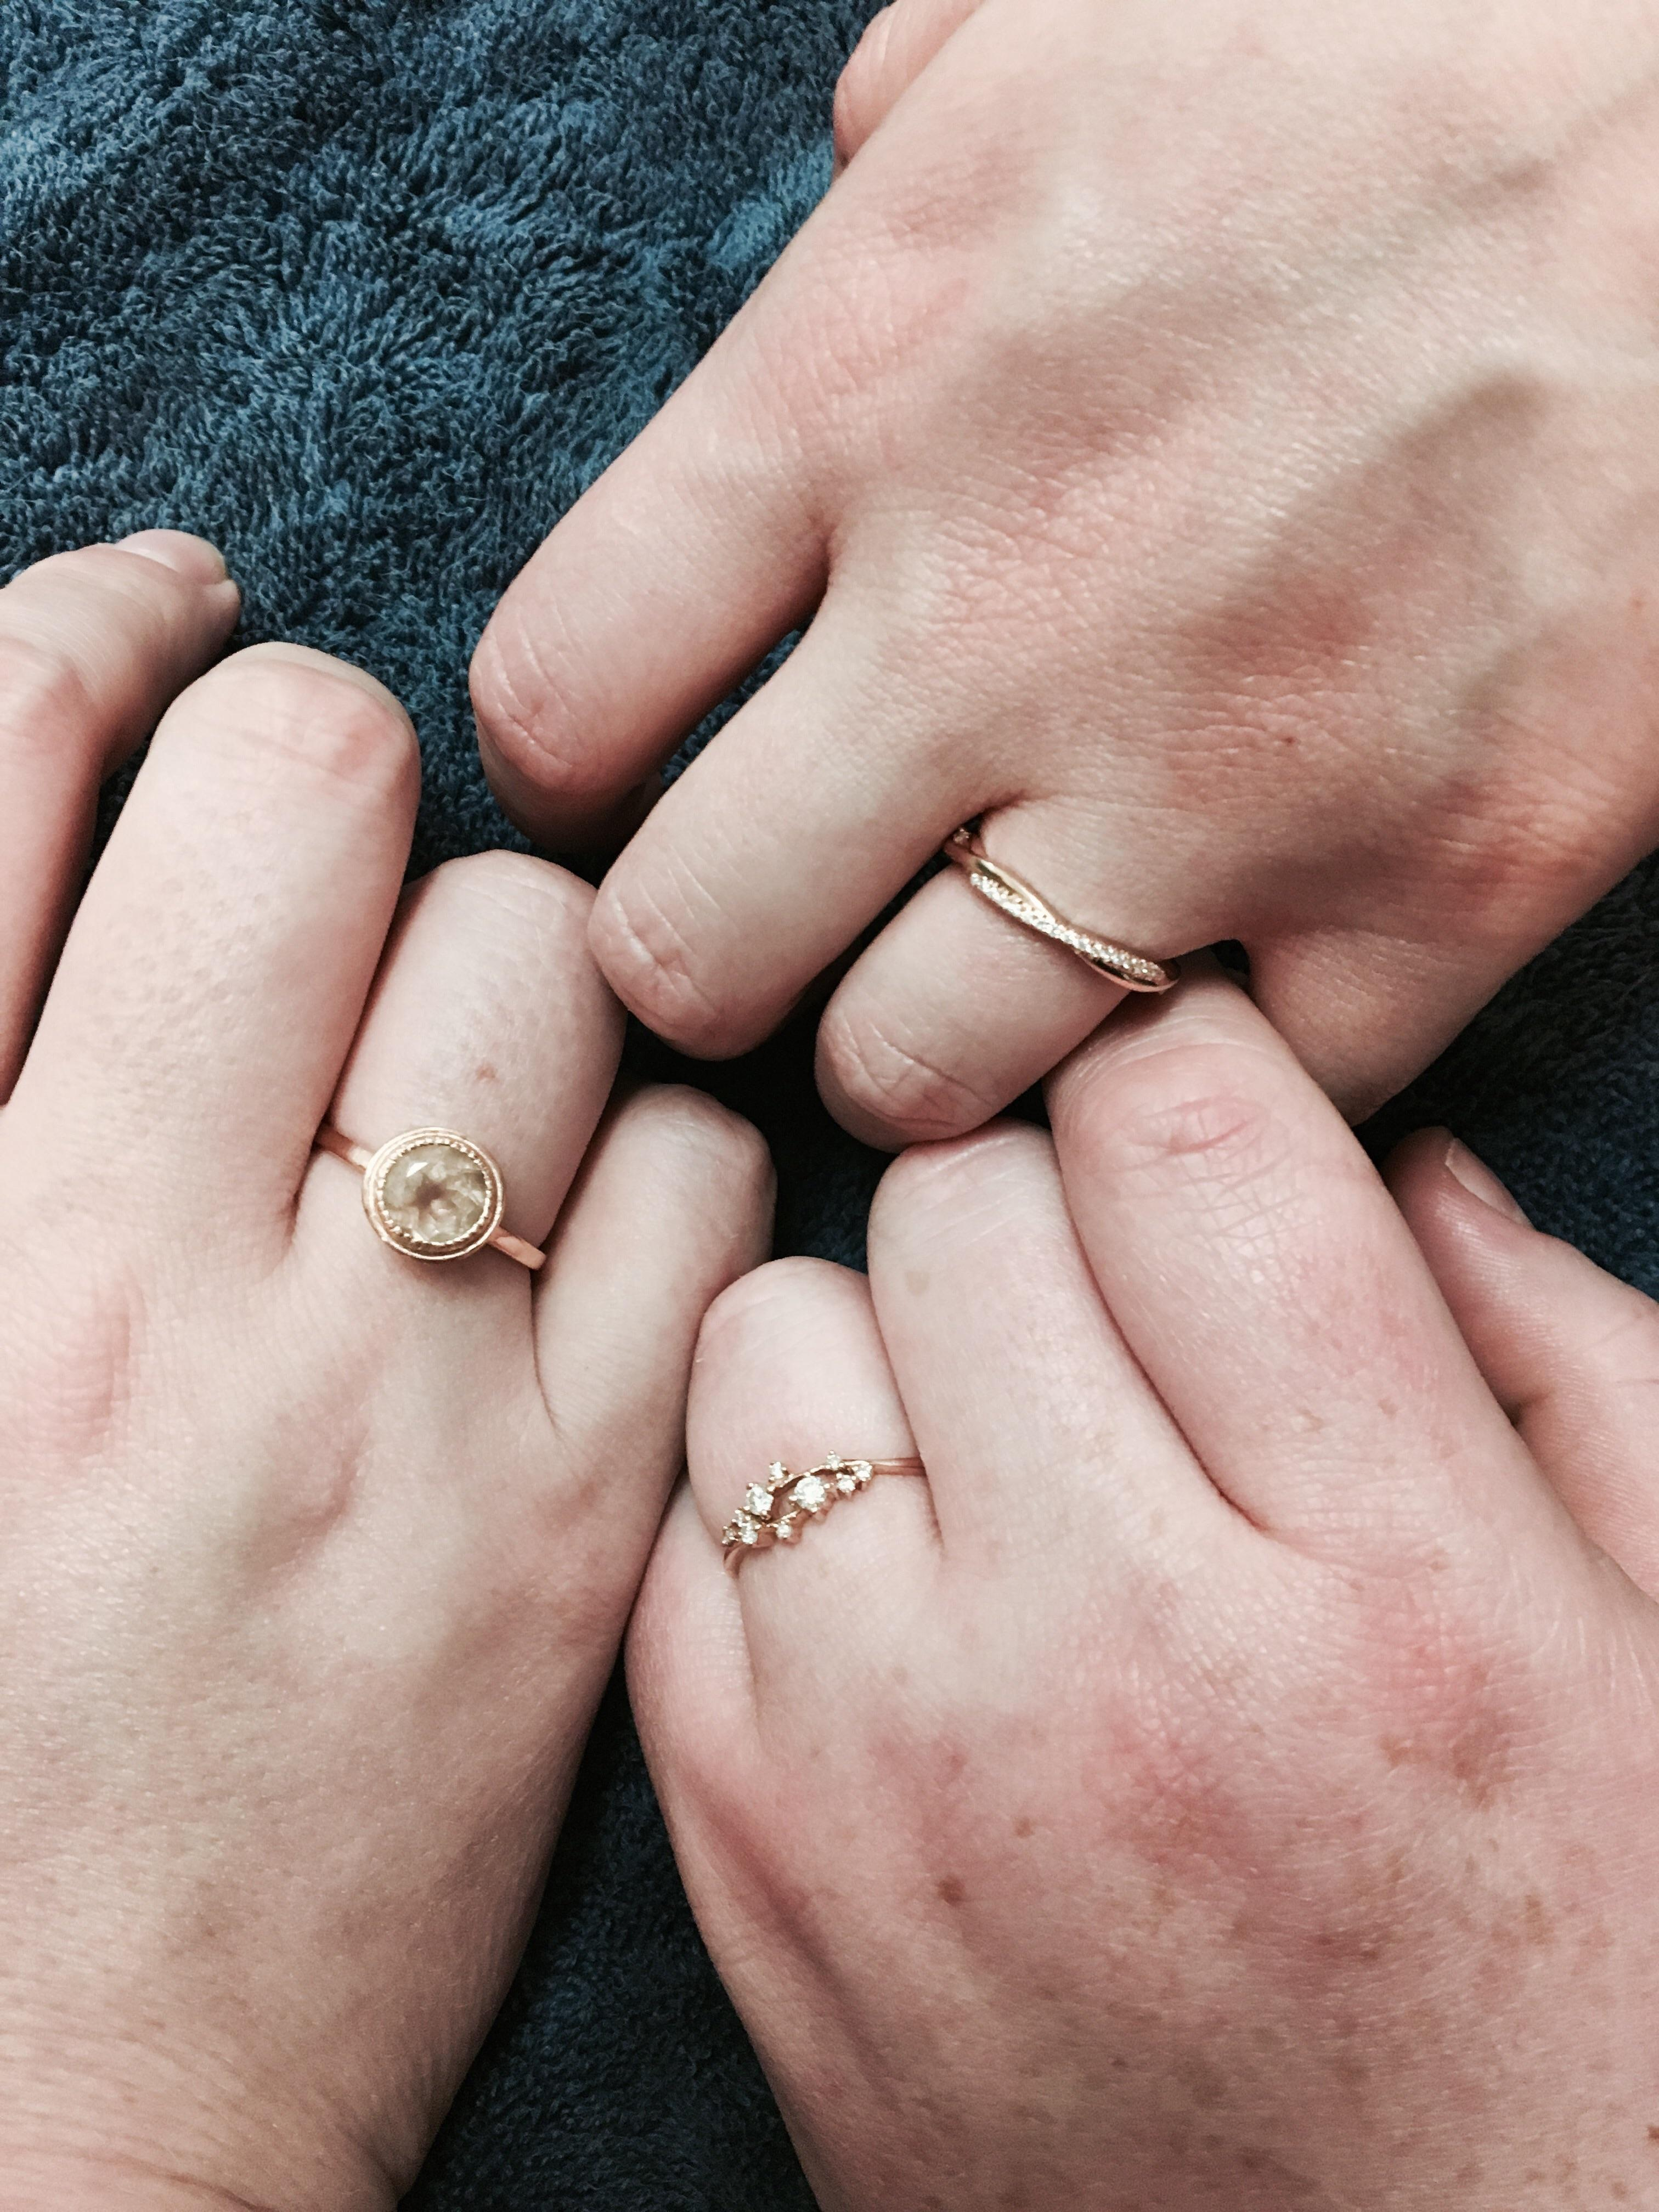 Polyamorous Wedding Rings : polyamorous, wedding, rings, Model,, Share!, Polyamory